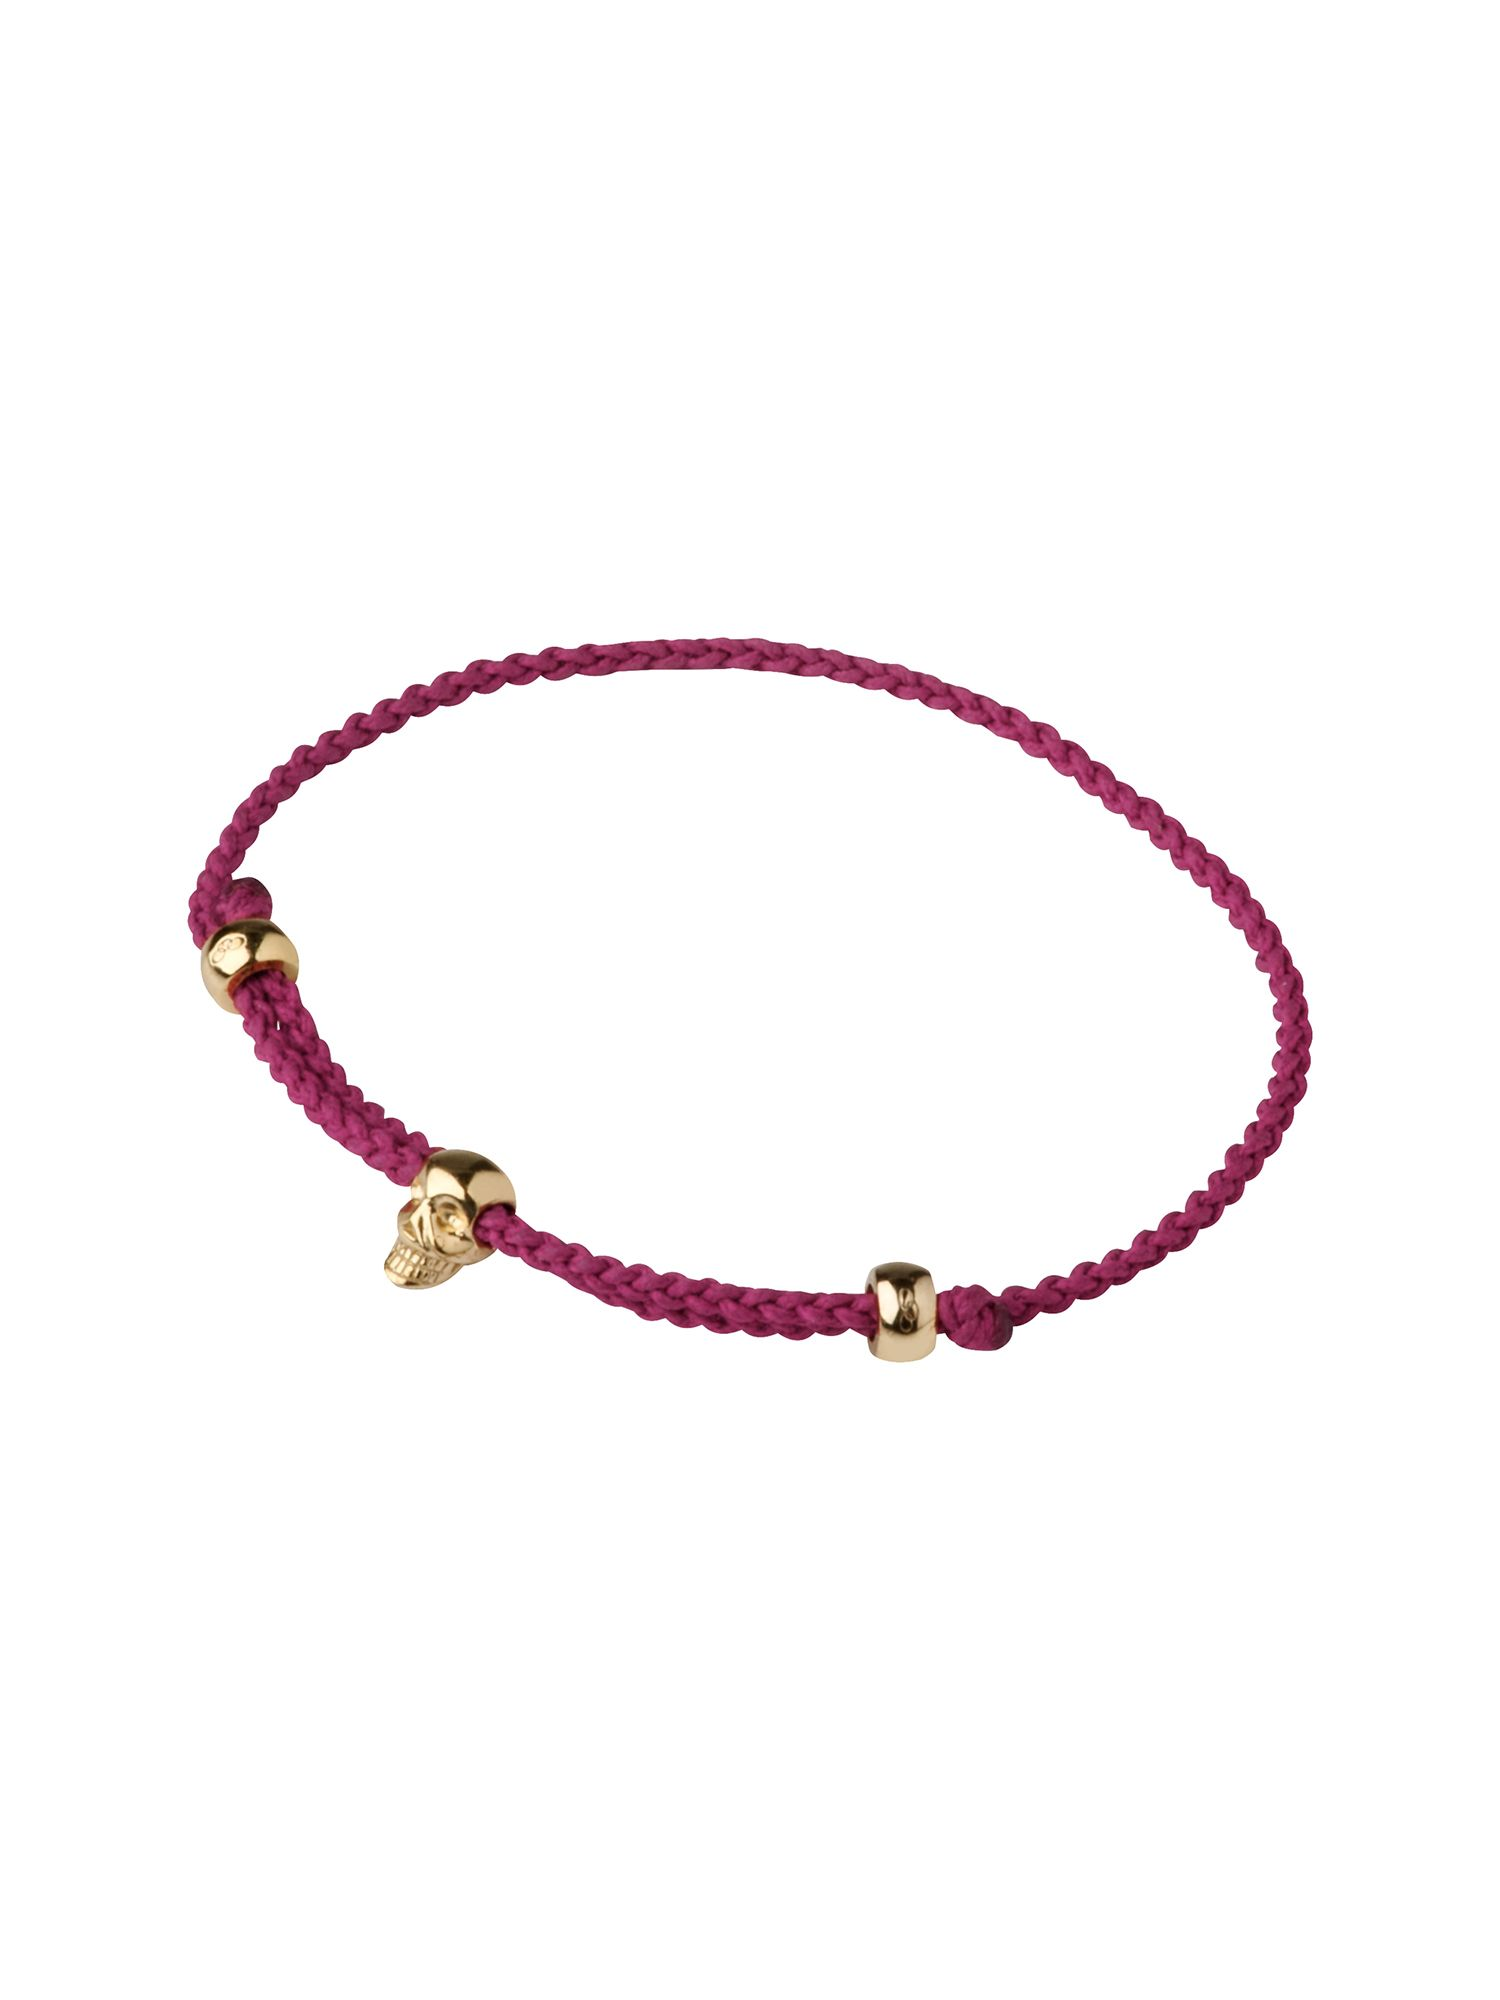 Yellow gold vermeil mini red skull cord bracelet